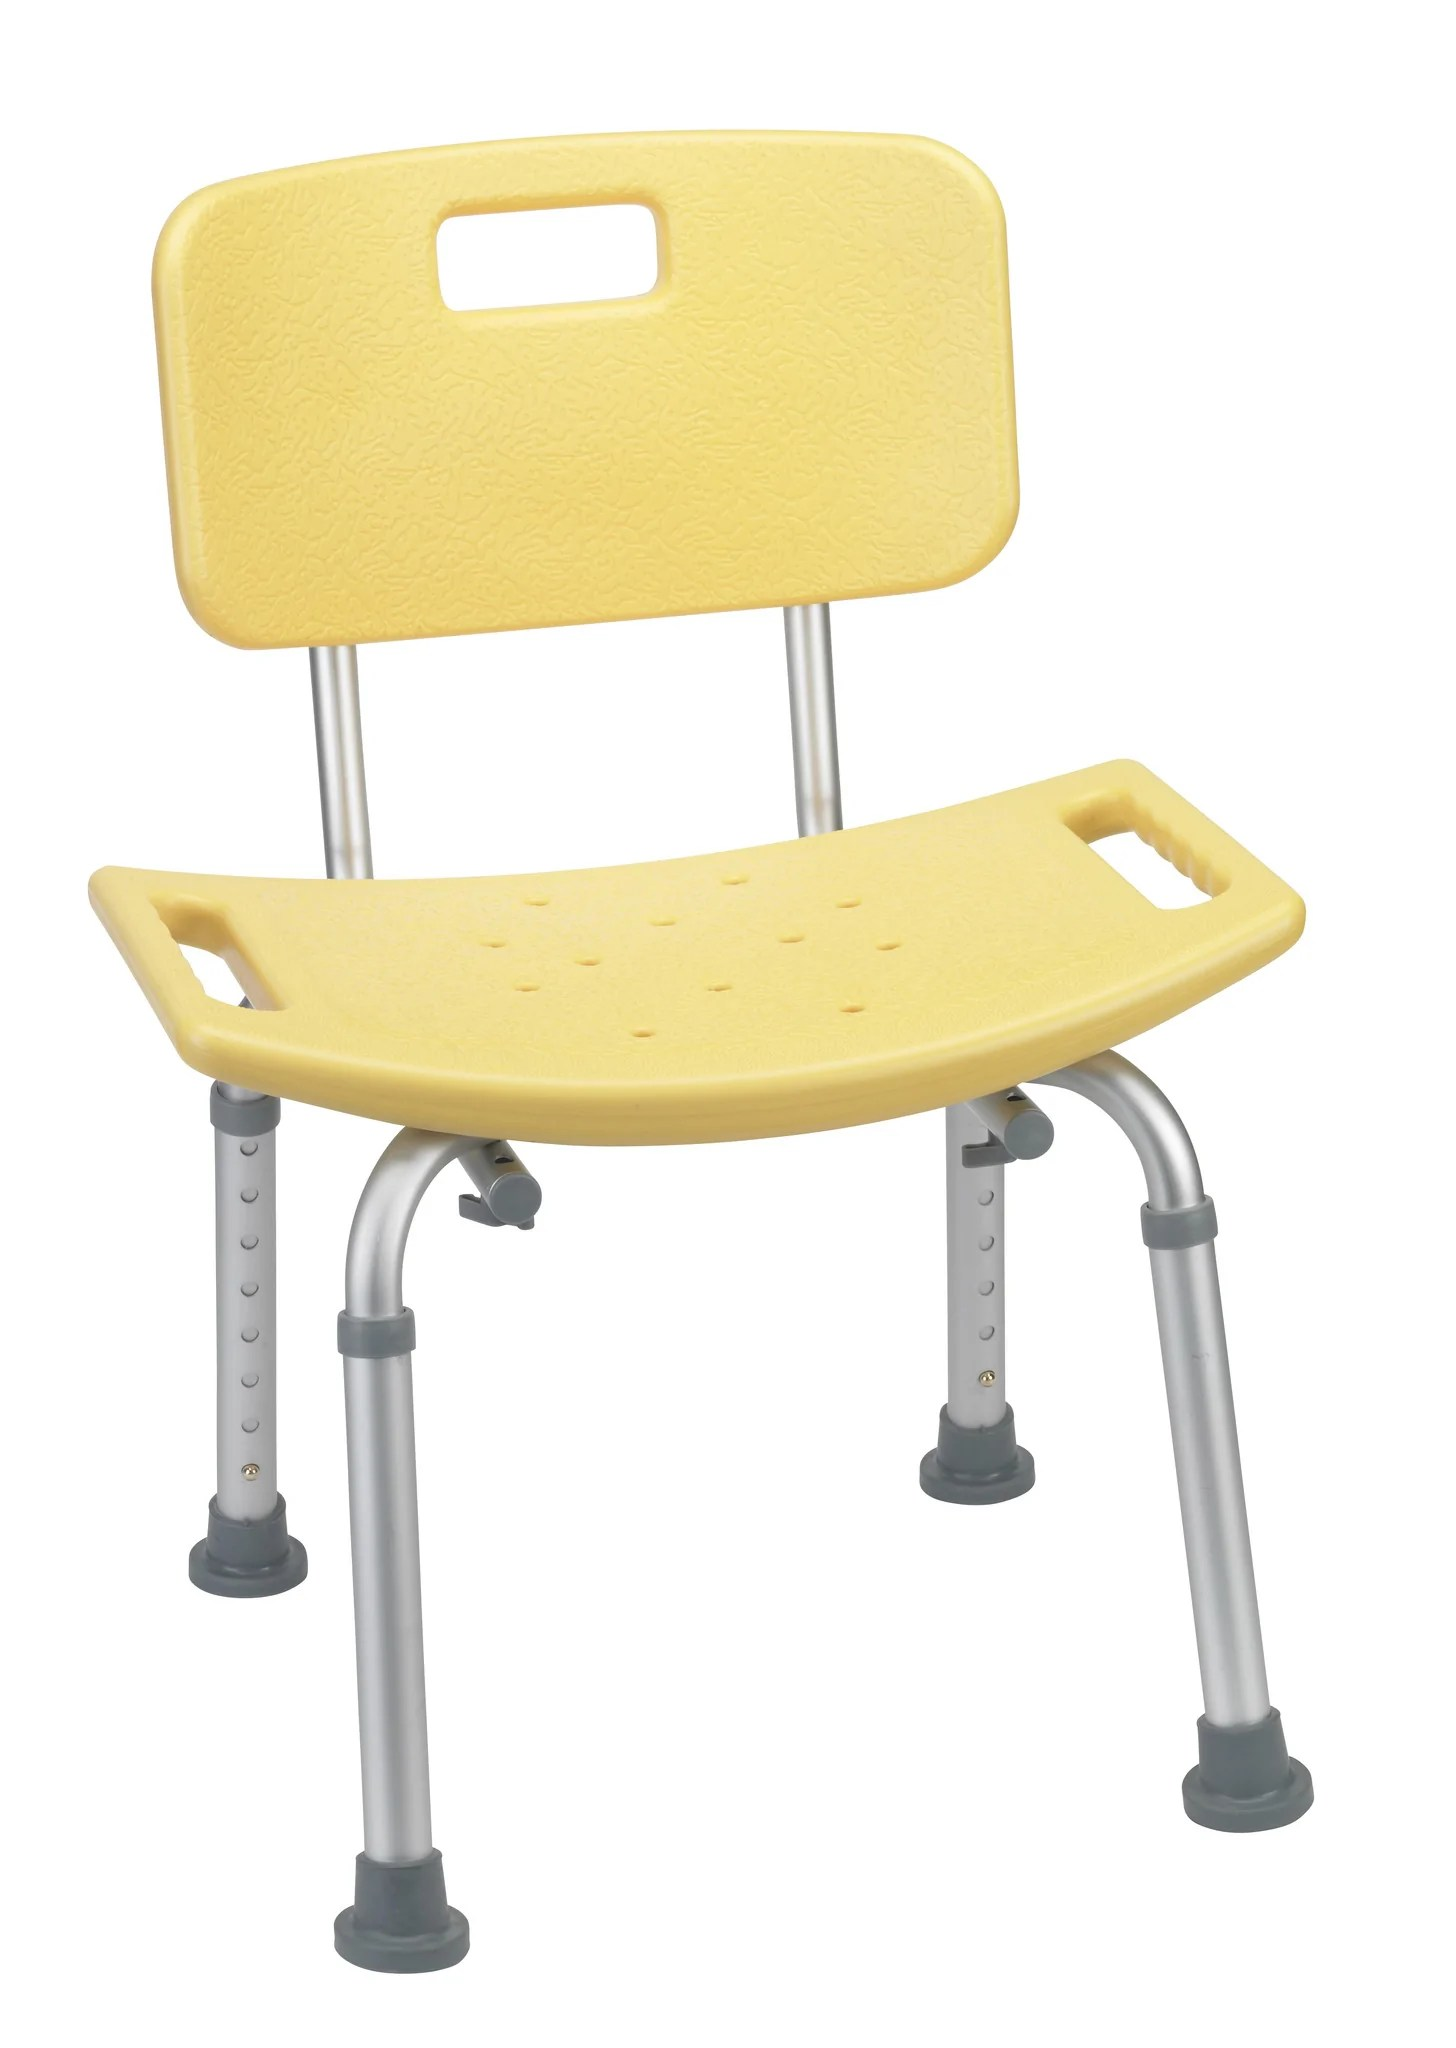 drive shower chair parts bjs folding chairs medical tub bench with back csa